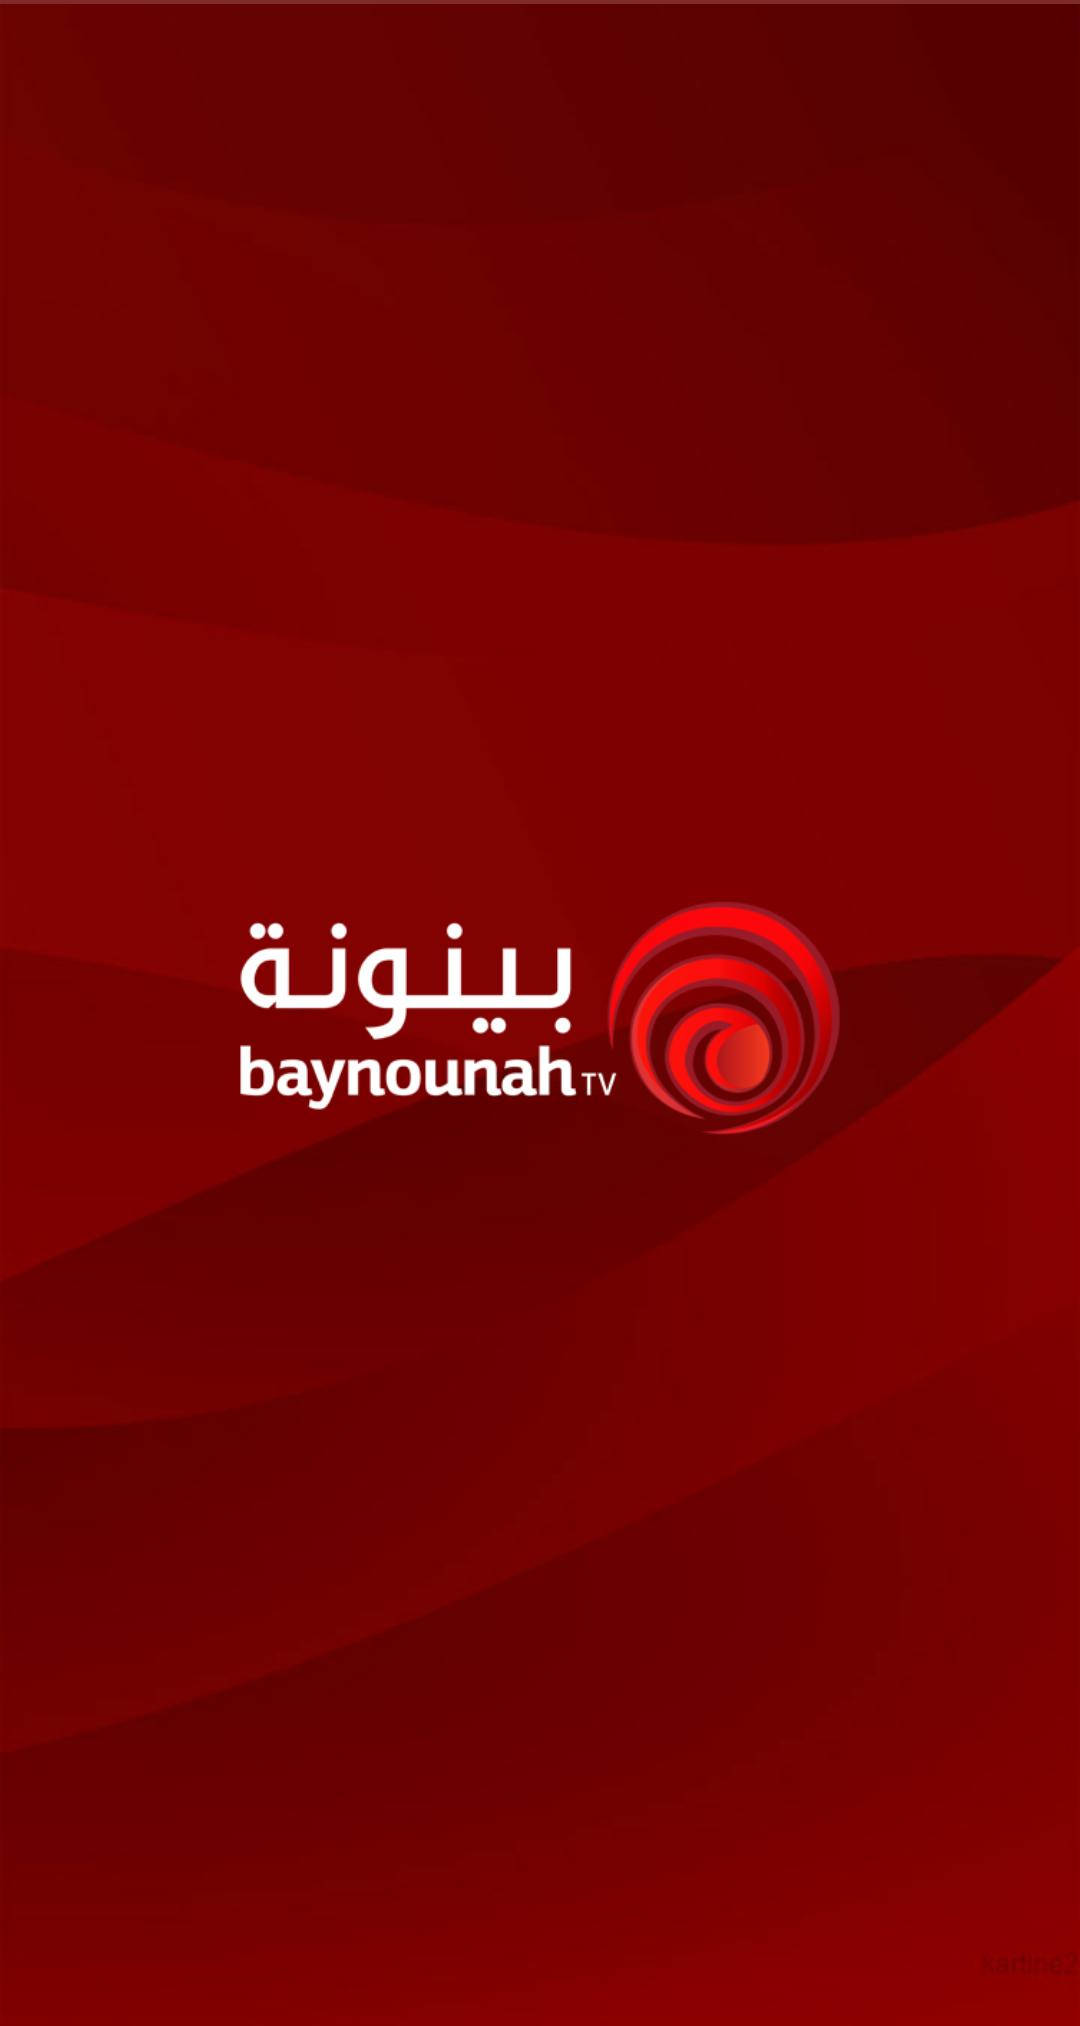 Baynounah Tv For Android Apk Download